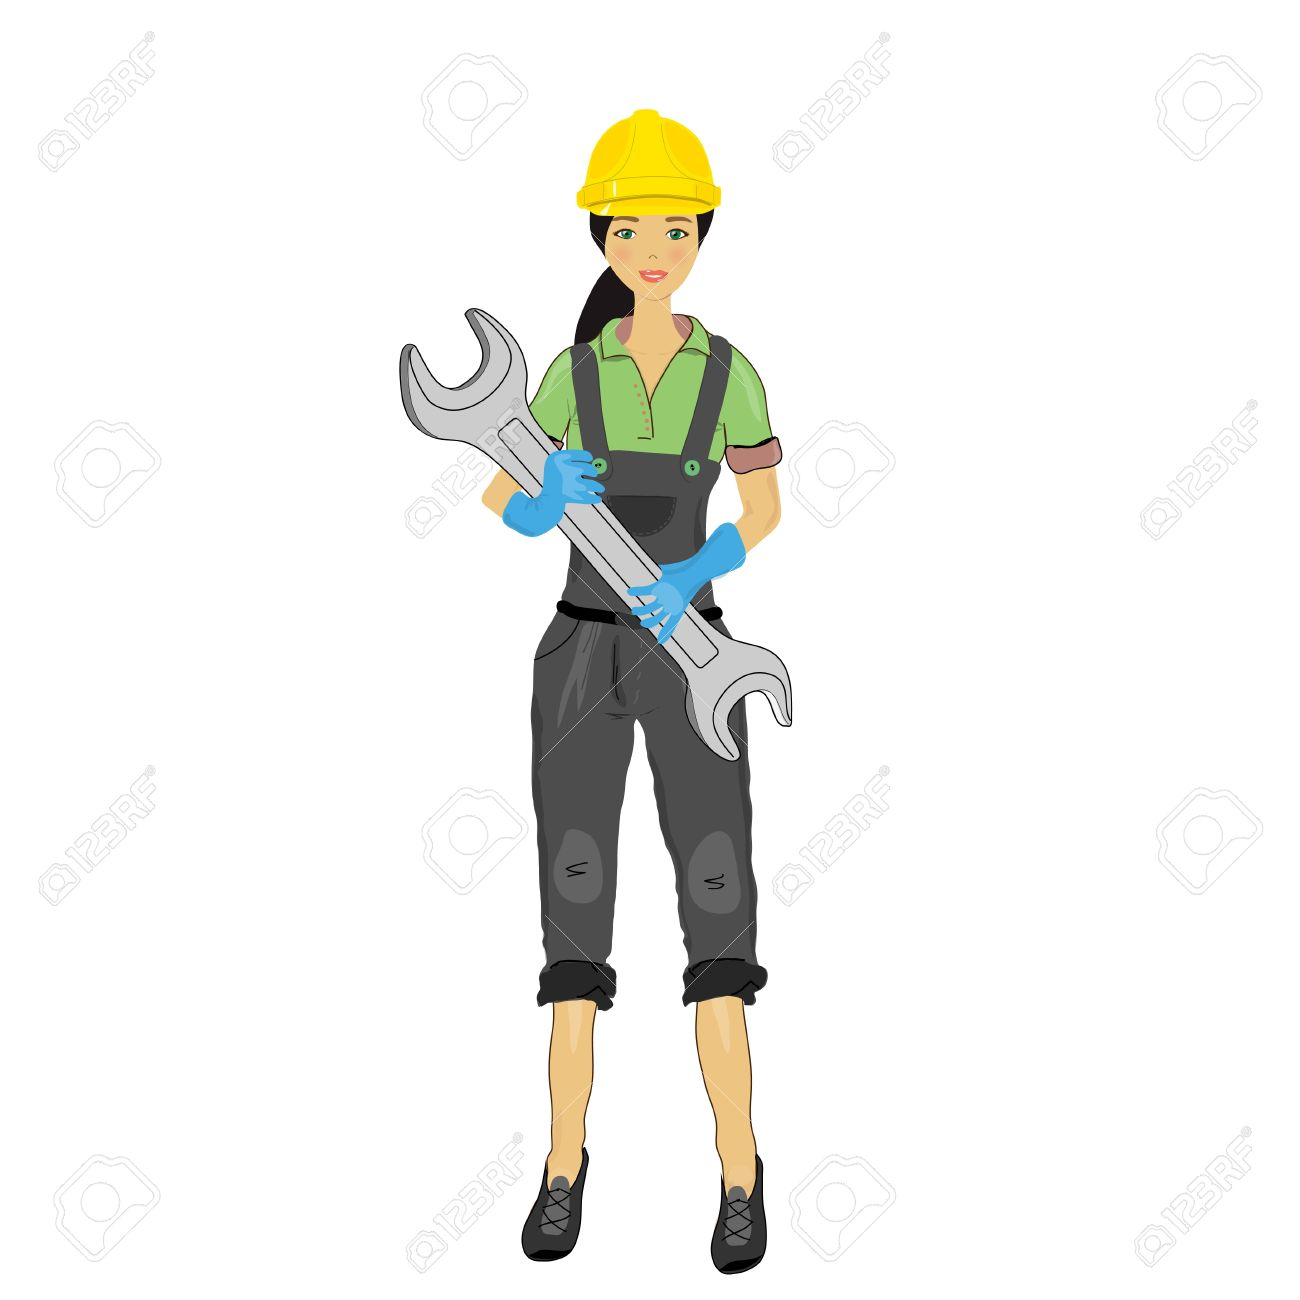 Girl Architect Clipart Architect Tools Girl in a